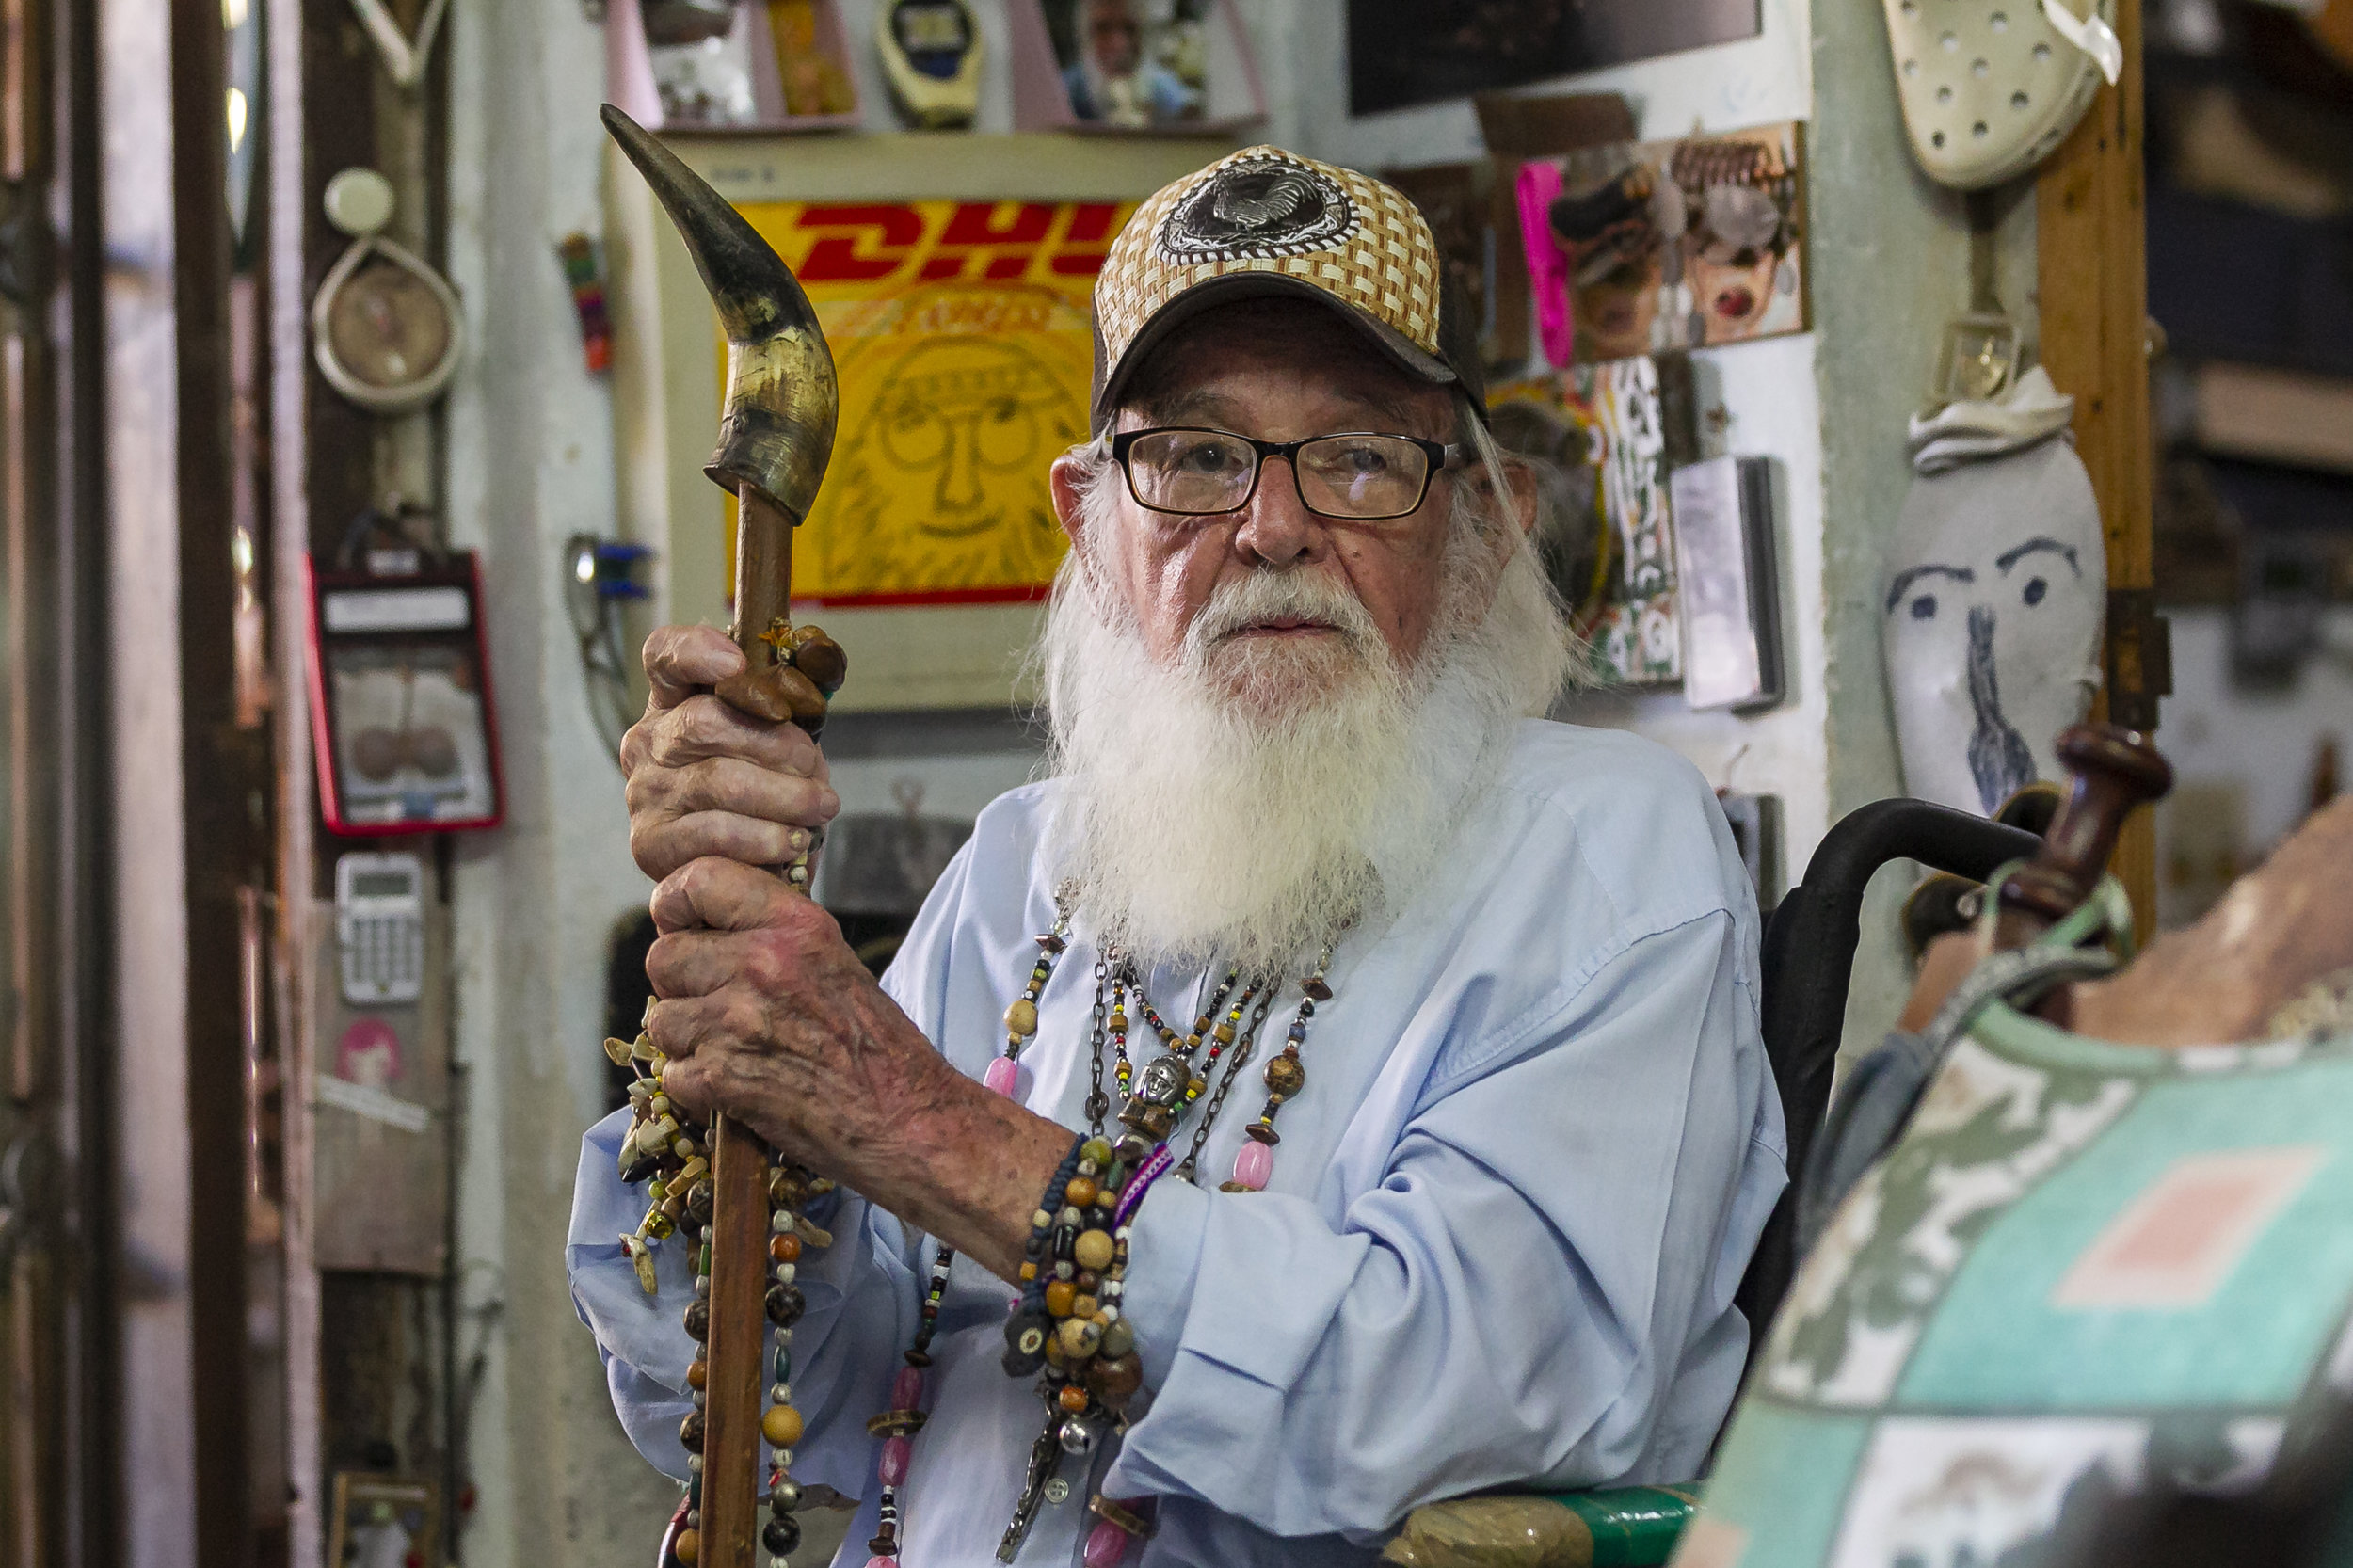 """Héctor Pascual """"Gallo"""" Portieles, 94, a Cuban outsider artist, explains that he never sells his work, he creates art from found objects to feed people's spirits. In his house in Alamar, on the eastern outskirts of Havana, Portieles has thousands of pieces of art he has created from cast-off objects."""